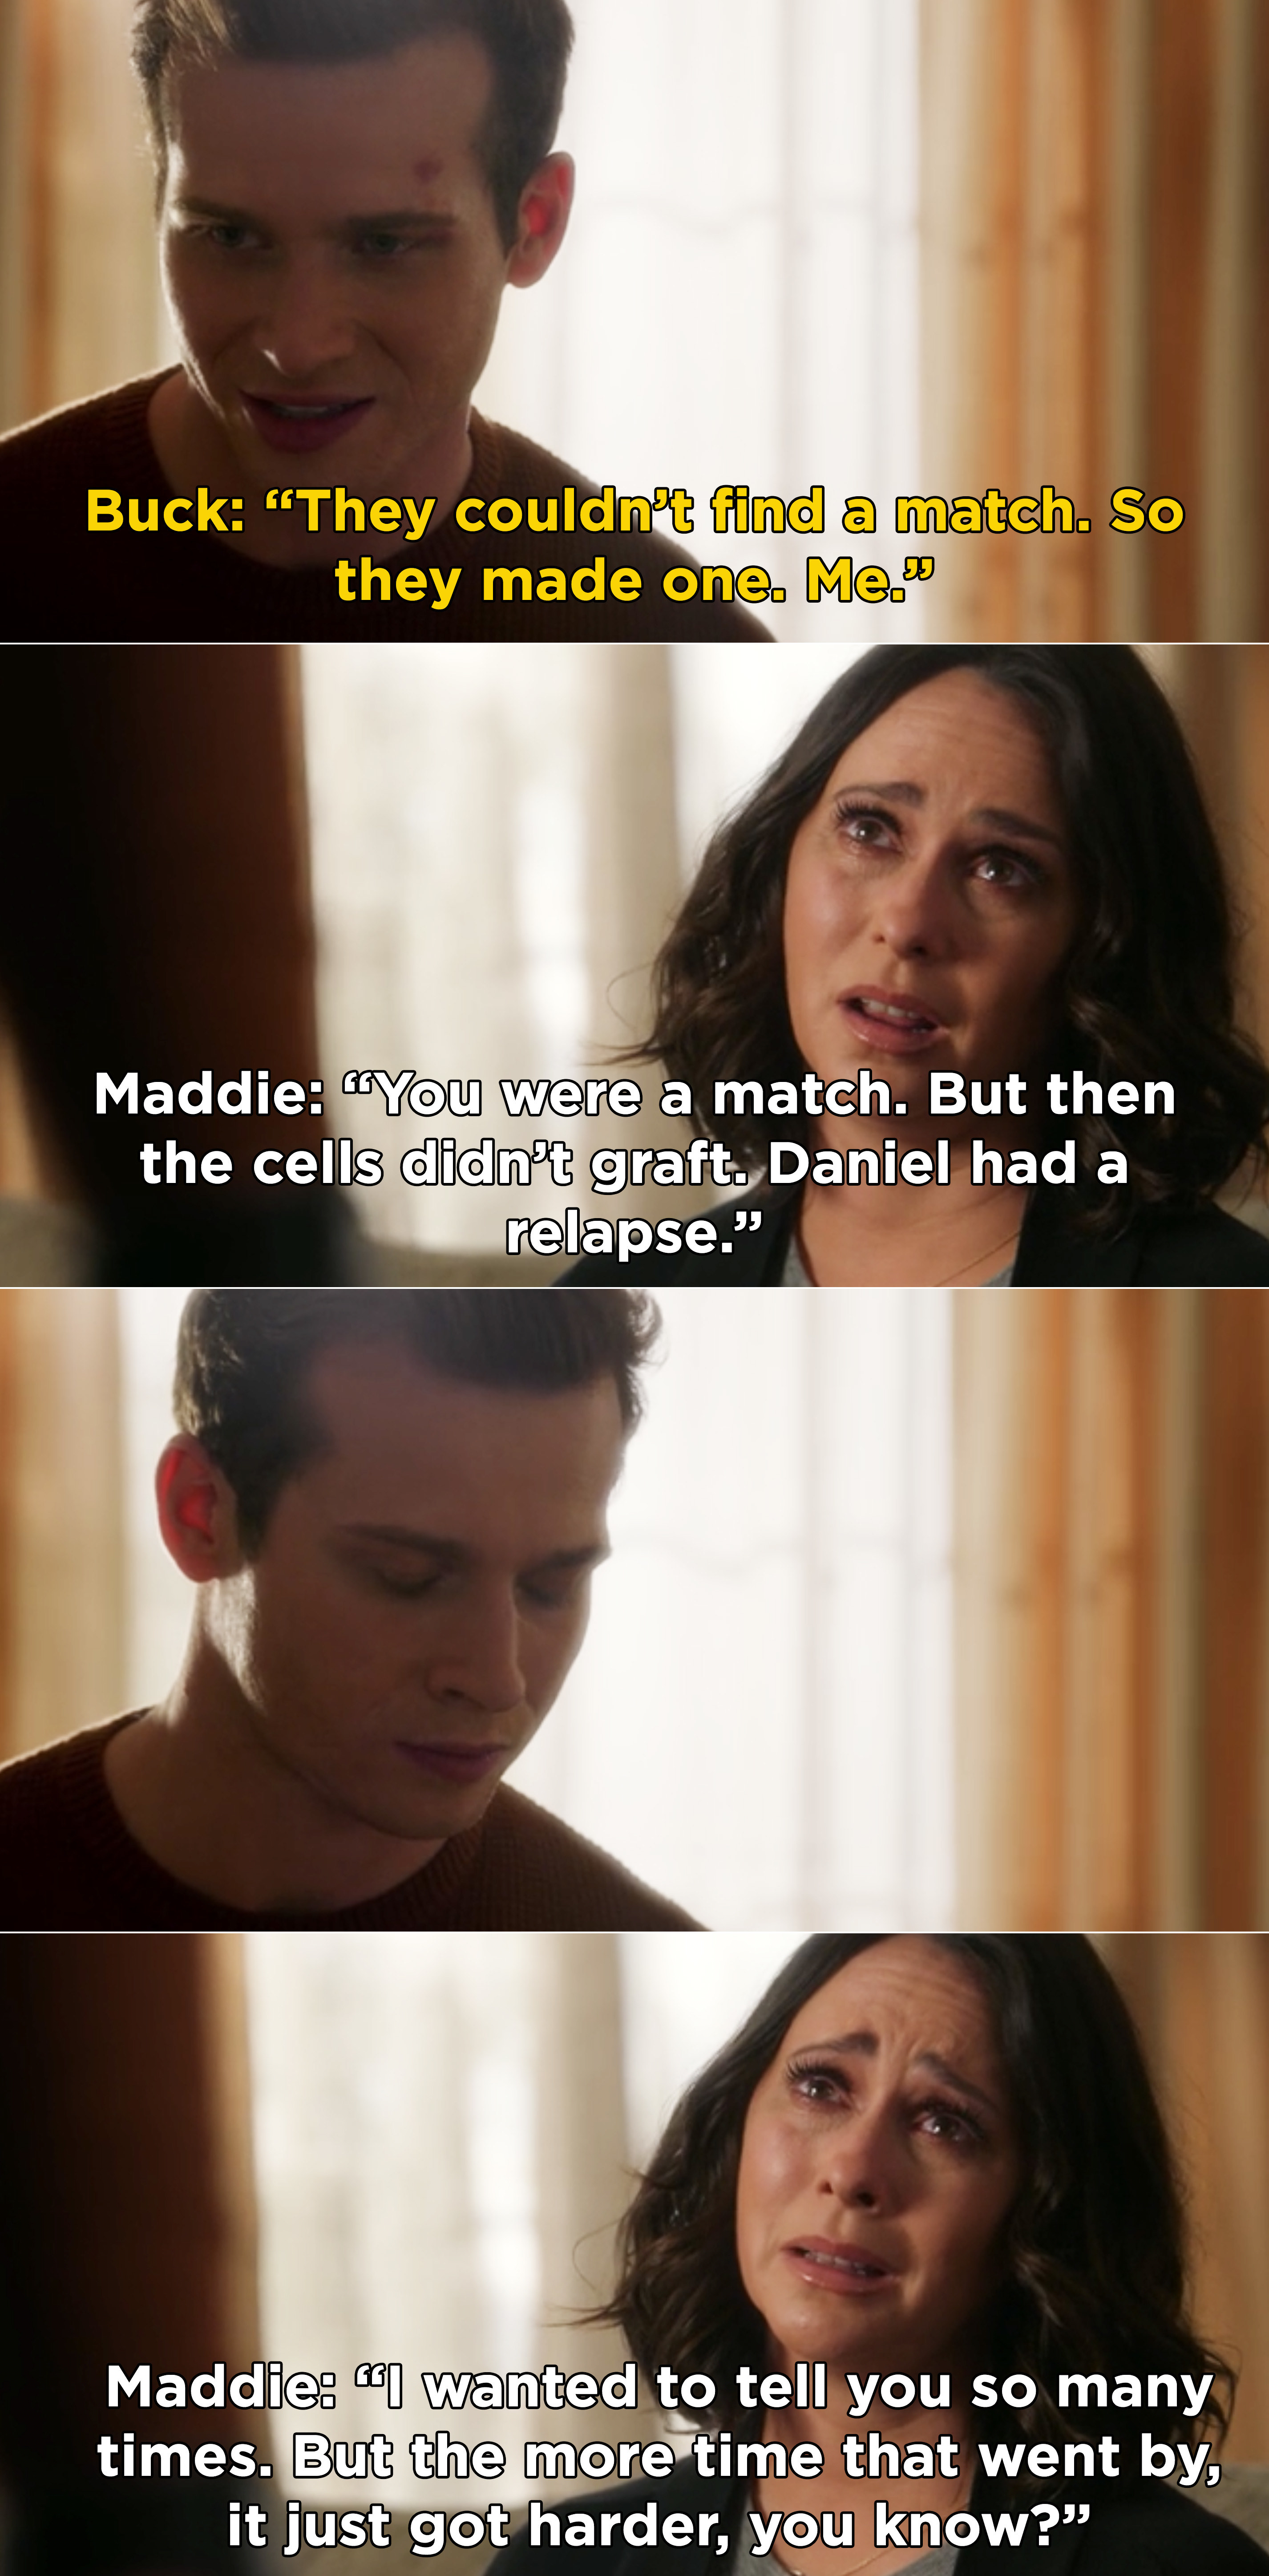 """Maddie telling Buck that he was a match for Daniel, but Daniel eventually relapsed. Then, Maddie says she wanted to tell Buck """"so many times"""""""